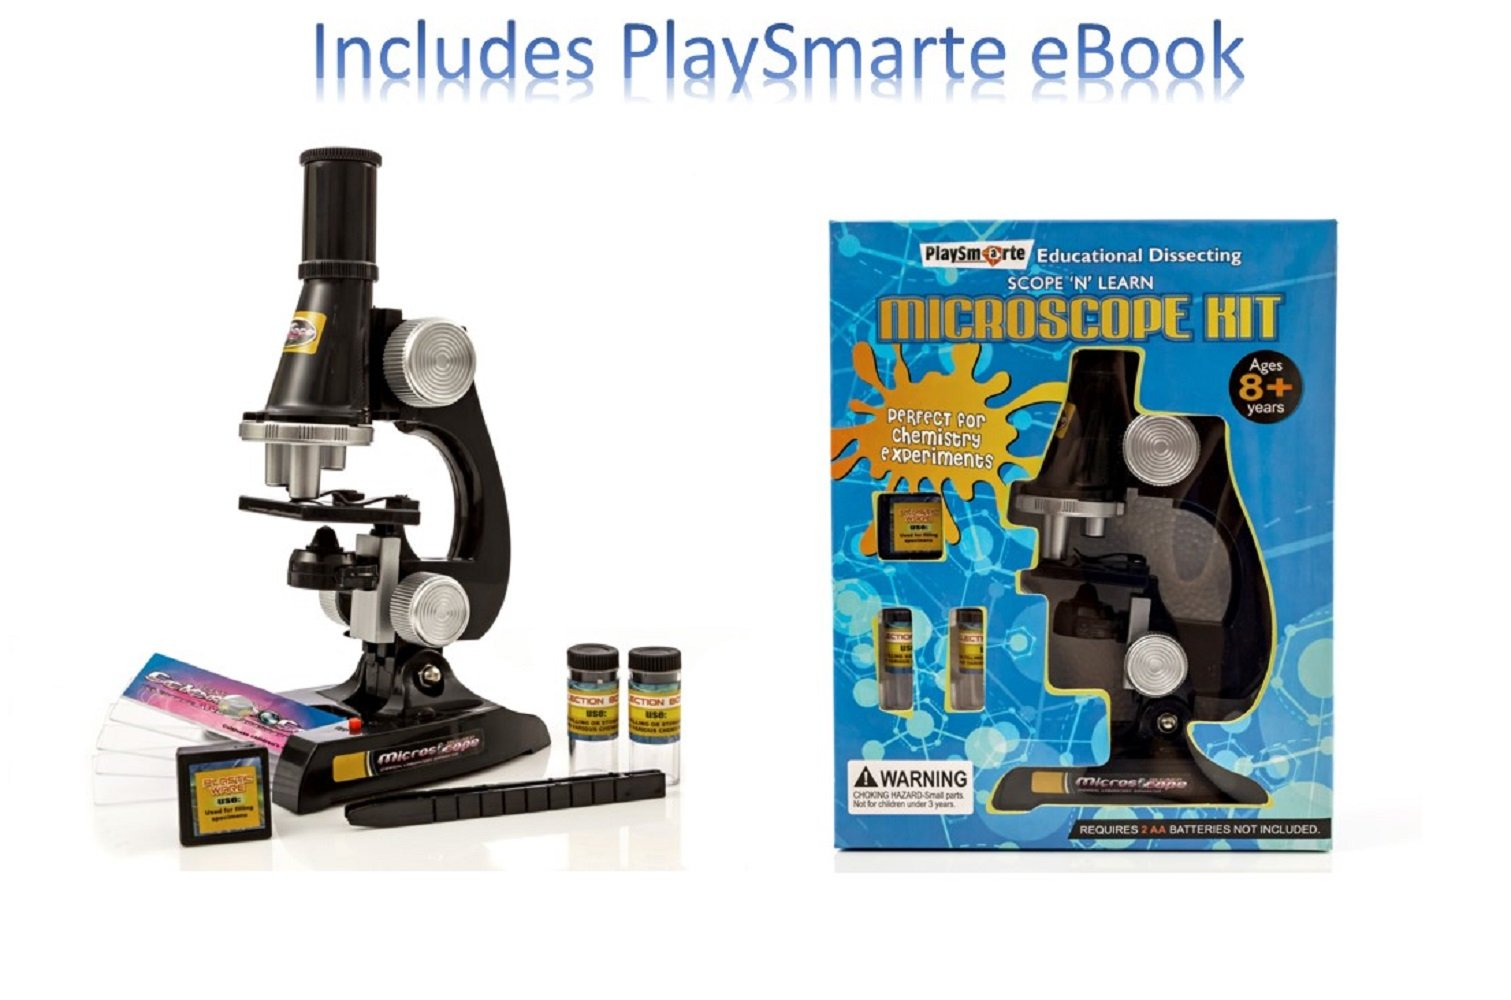 Playsmarte Kids Microscope 100X-400X Inspecting Dissecting Zoom LED Lights Microscope Comes With Tweezer, Blank Slides, Prepared Slide, blank labels For Kids